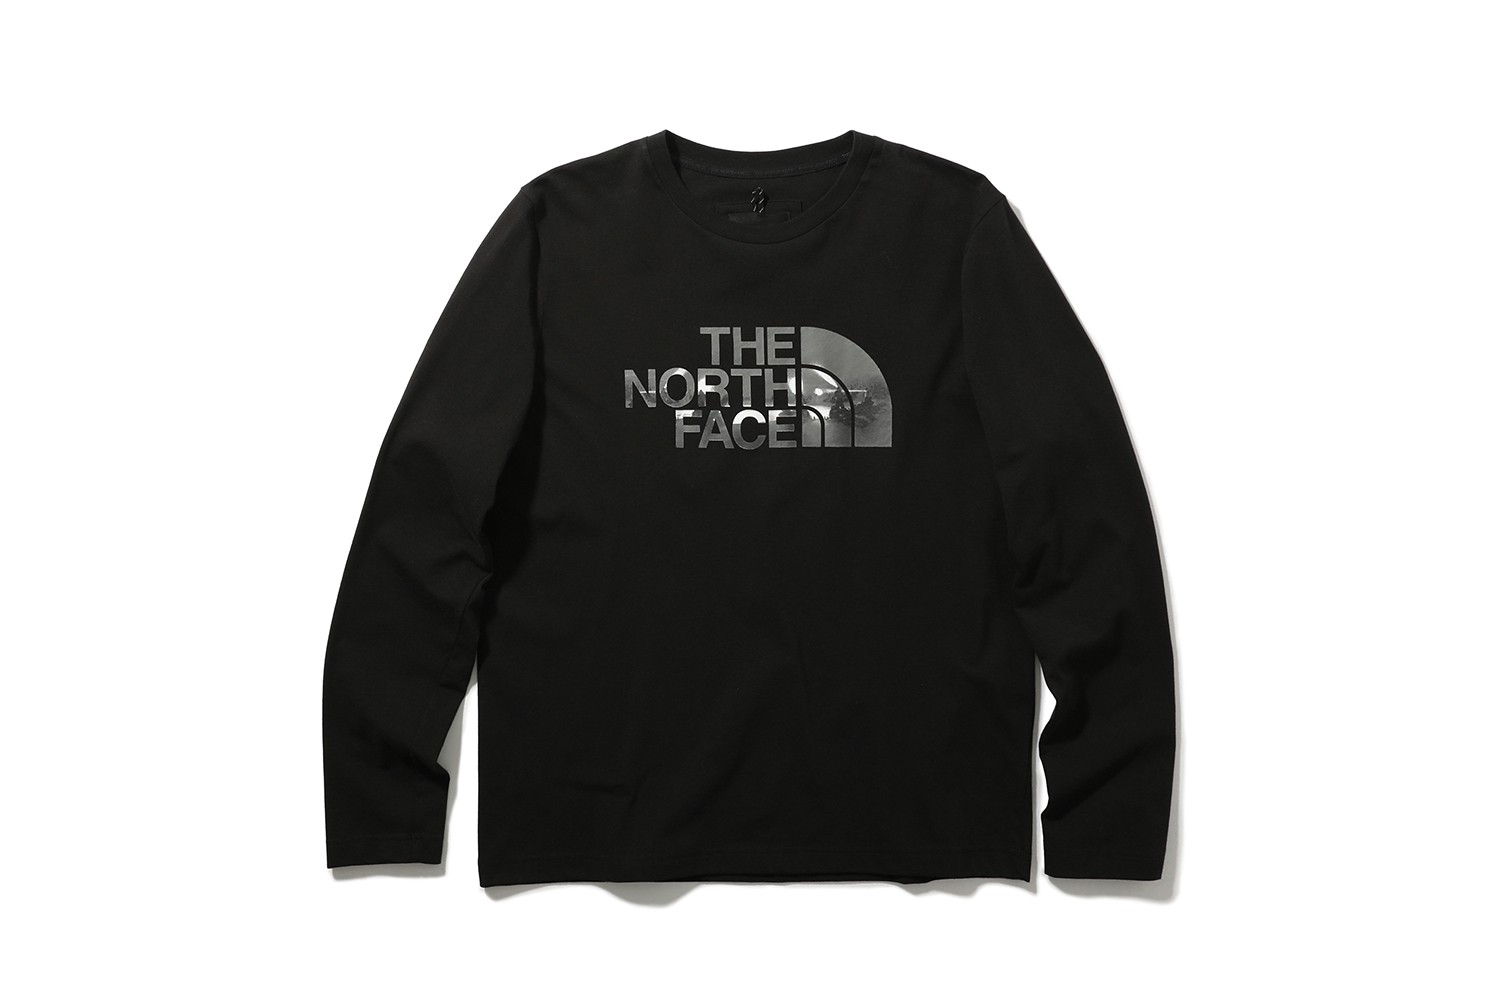 The North Face Black Series 最新秋季系列「THE ARCHIVES, REIMAGINED」正式發佈